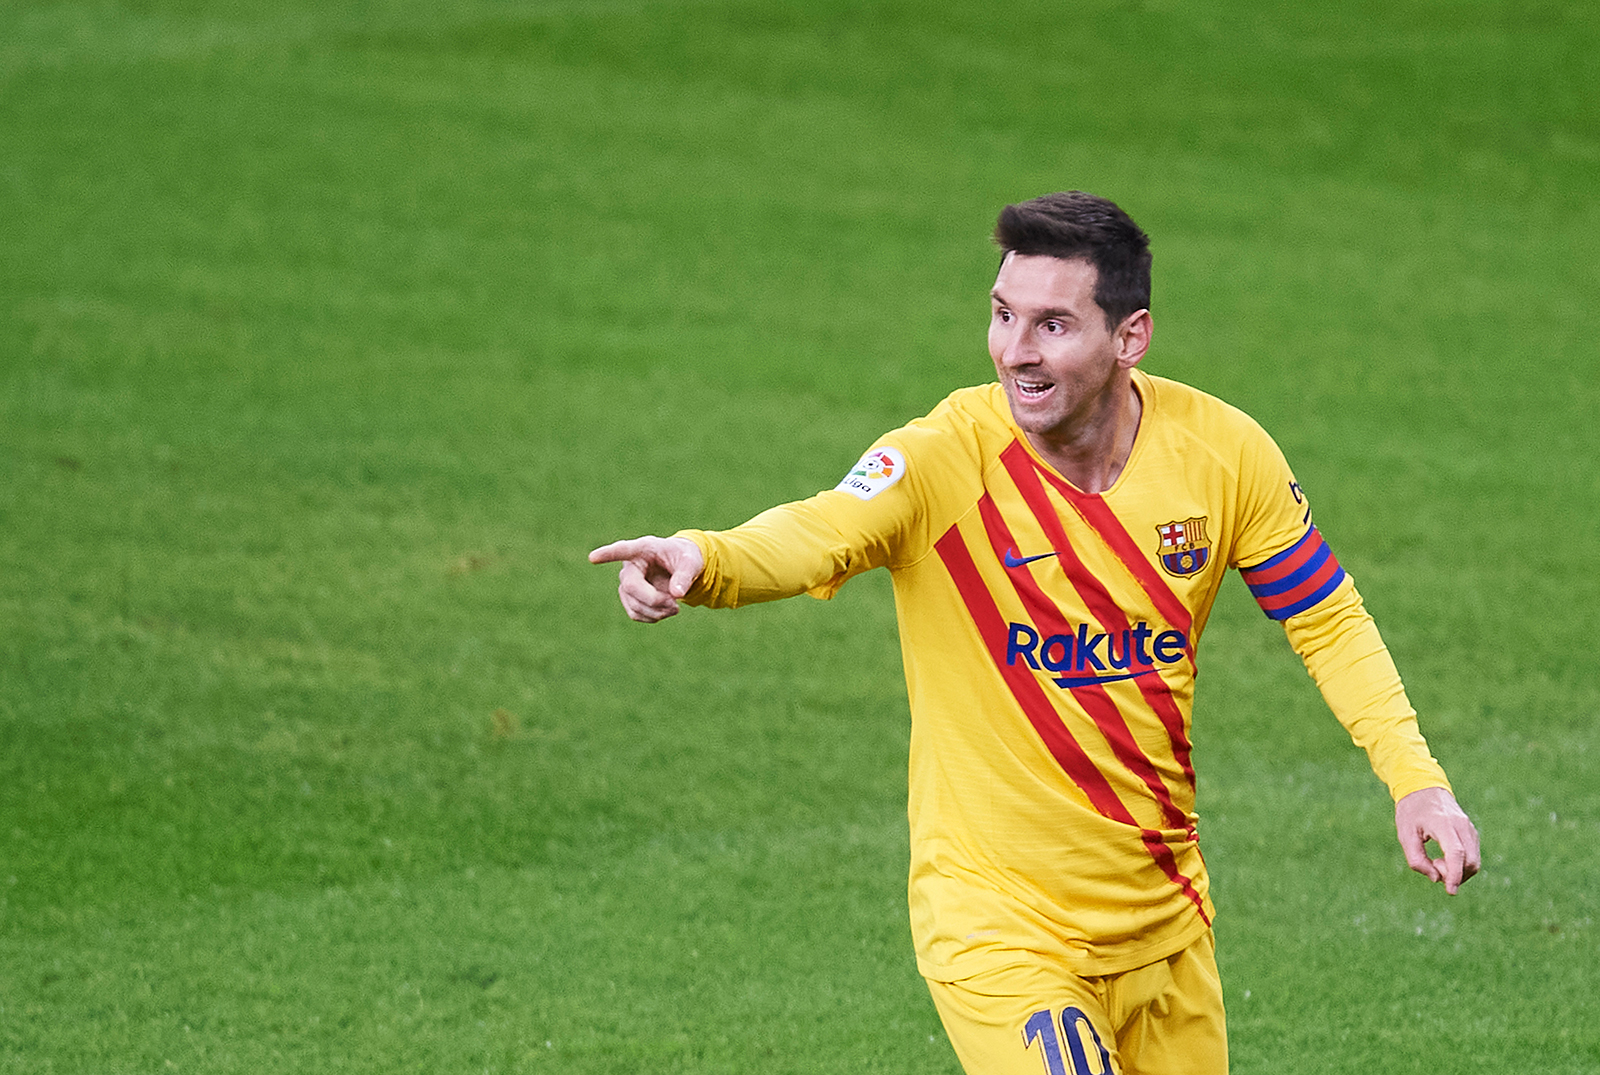 Lionel Messi scores twice to help resurgent Barcelona move to third in La Liga